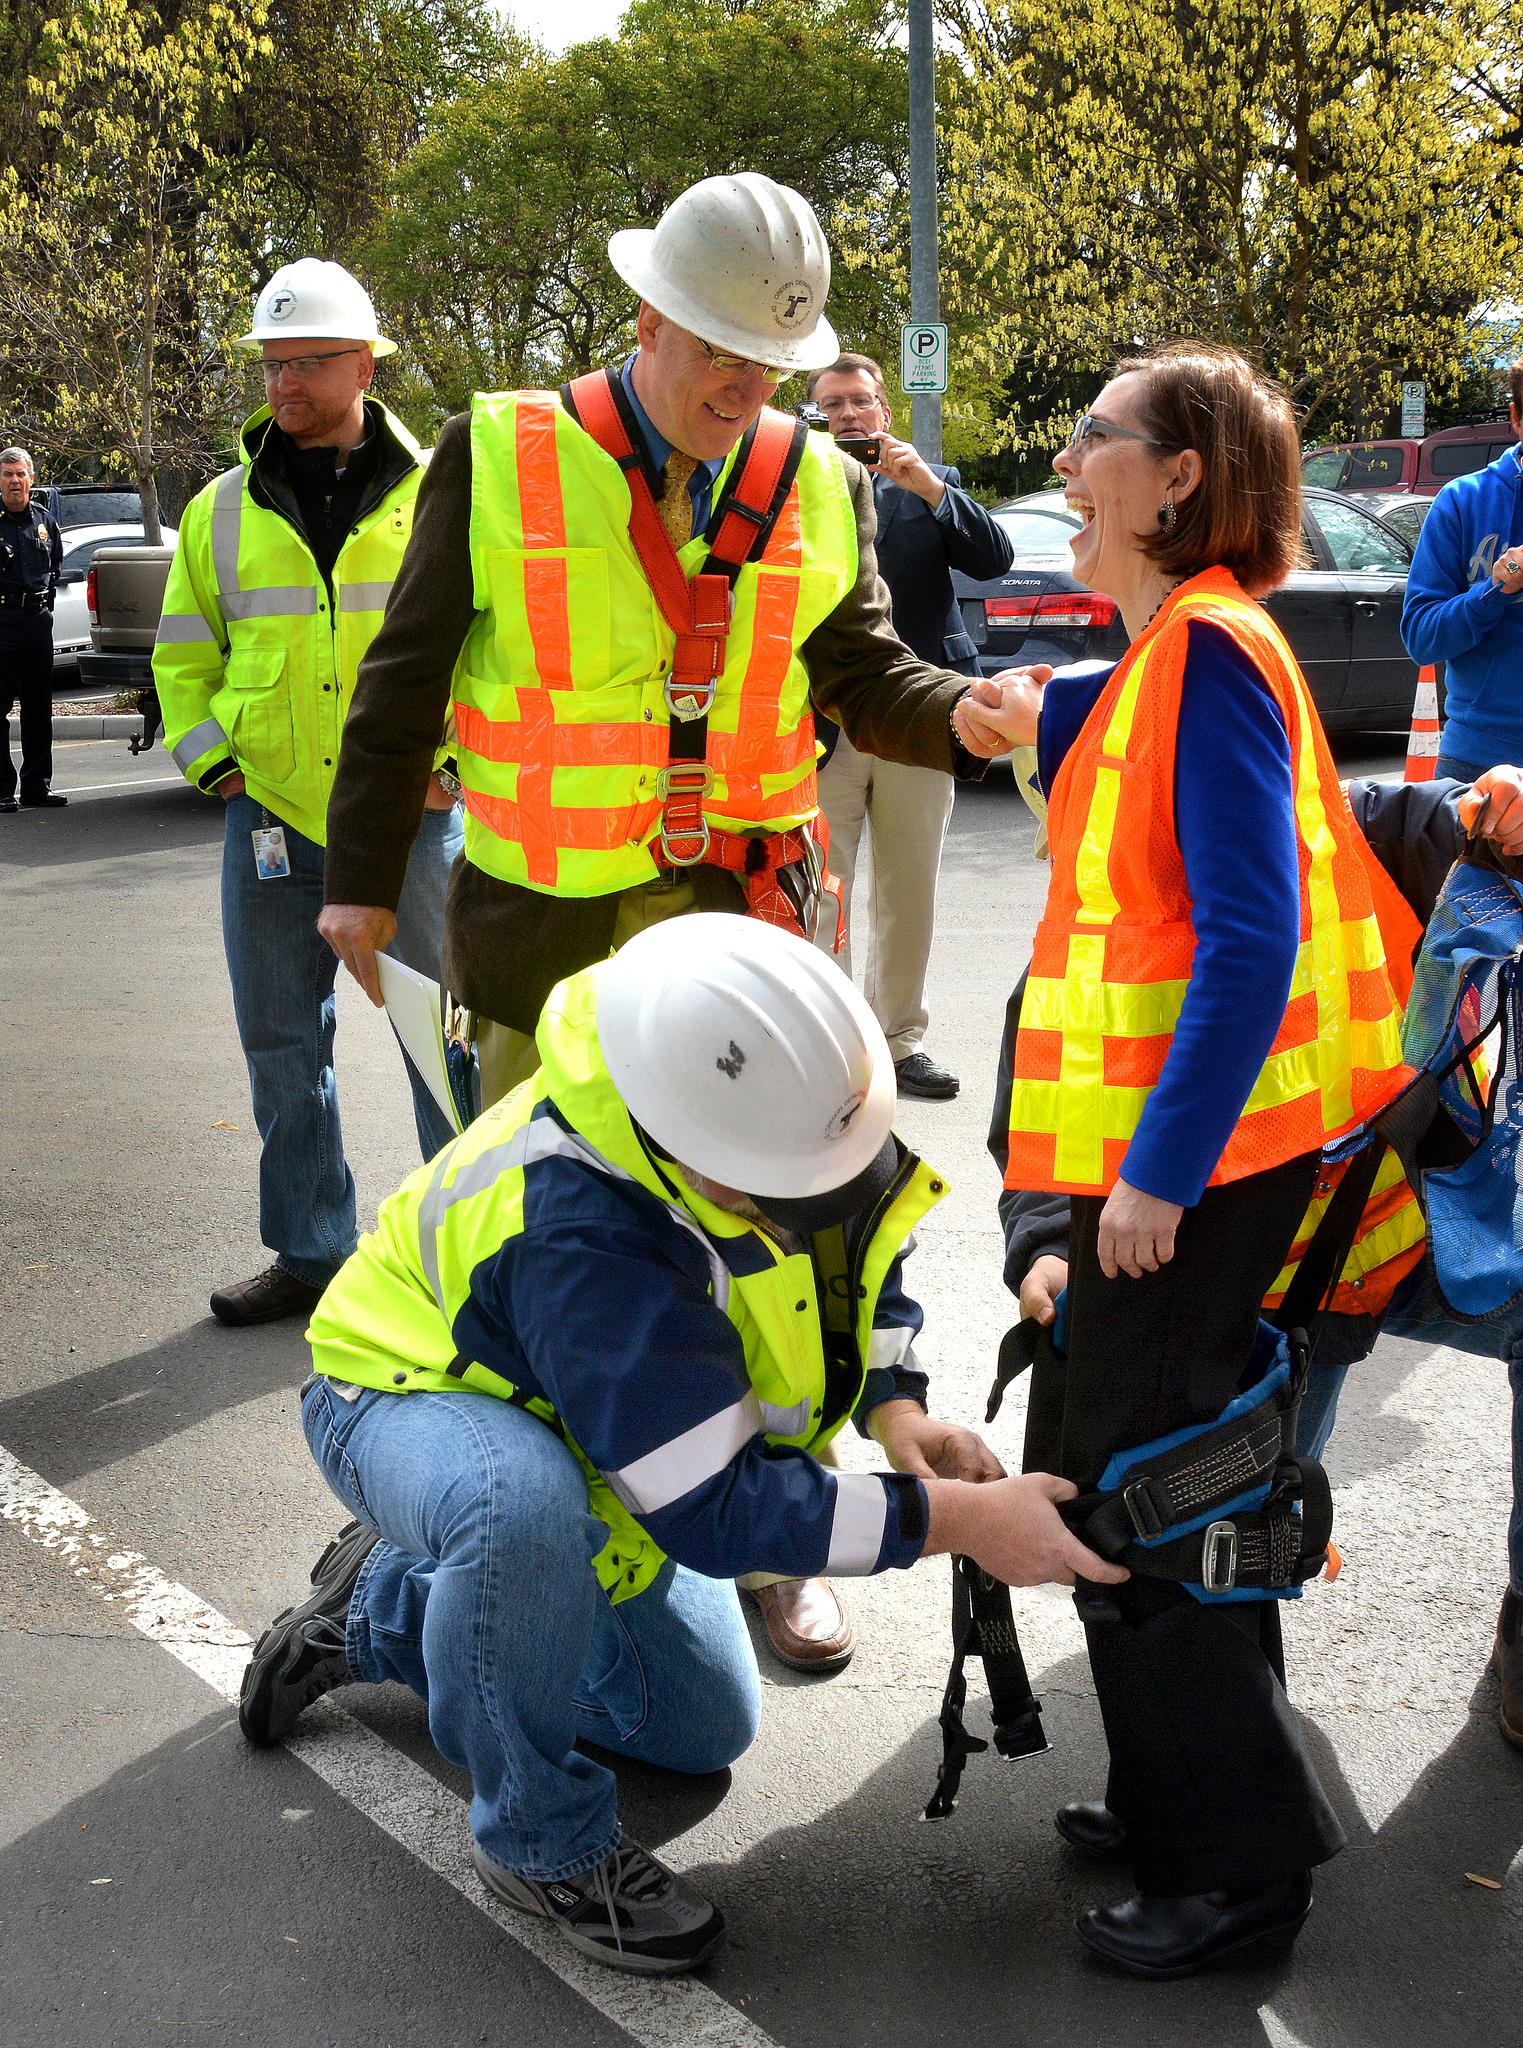 Residential Construction Safety Gear